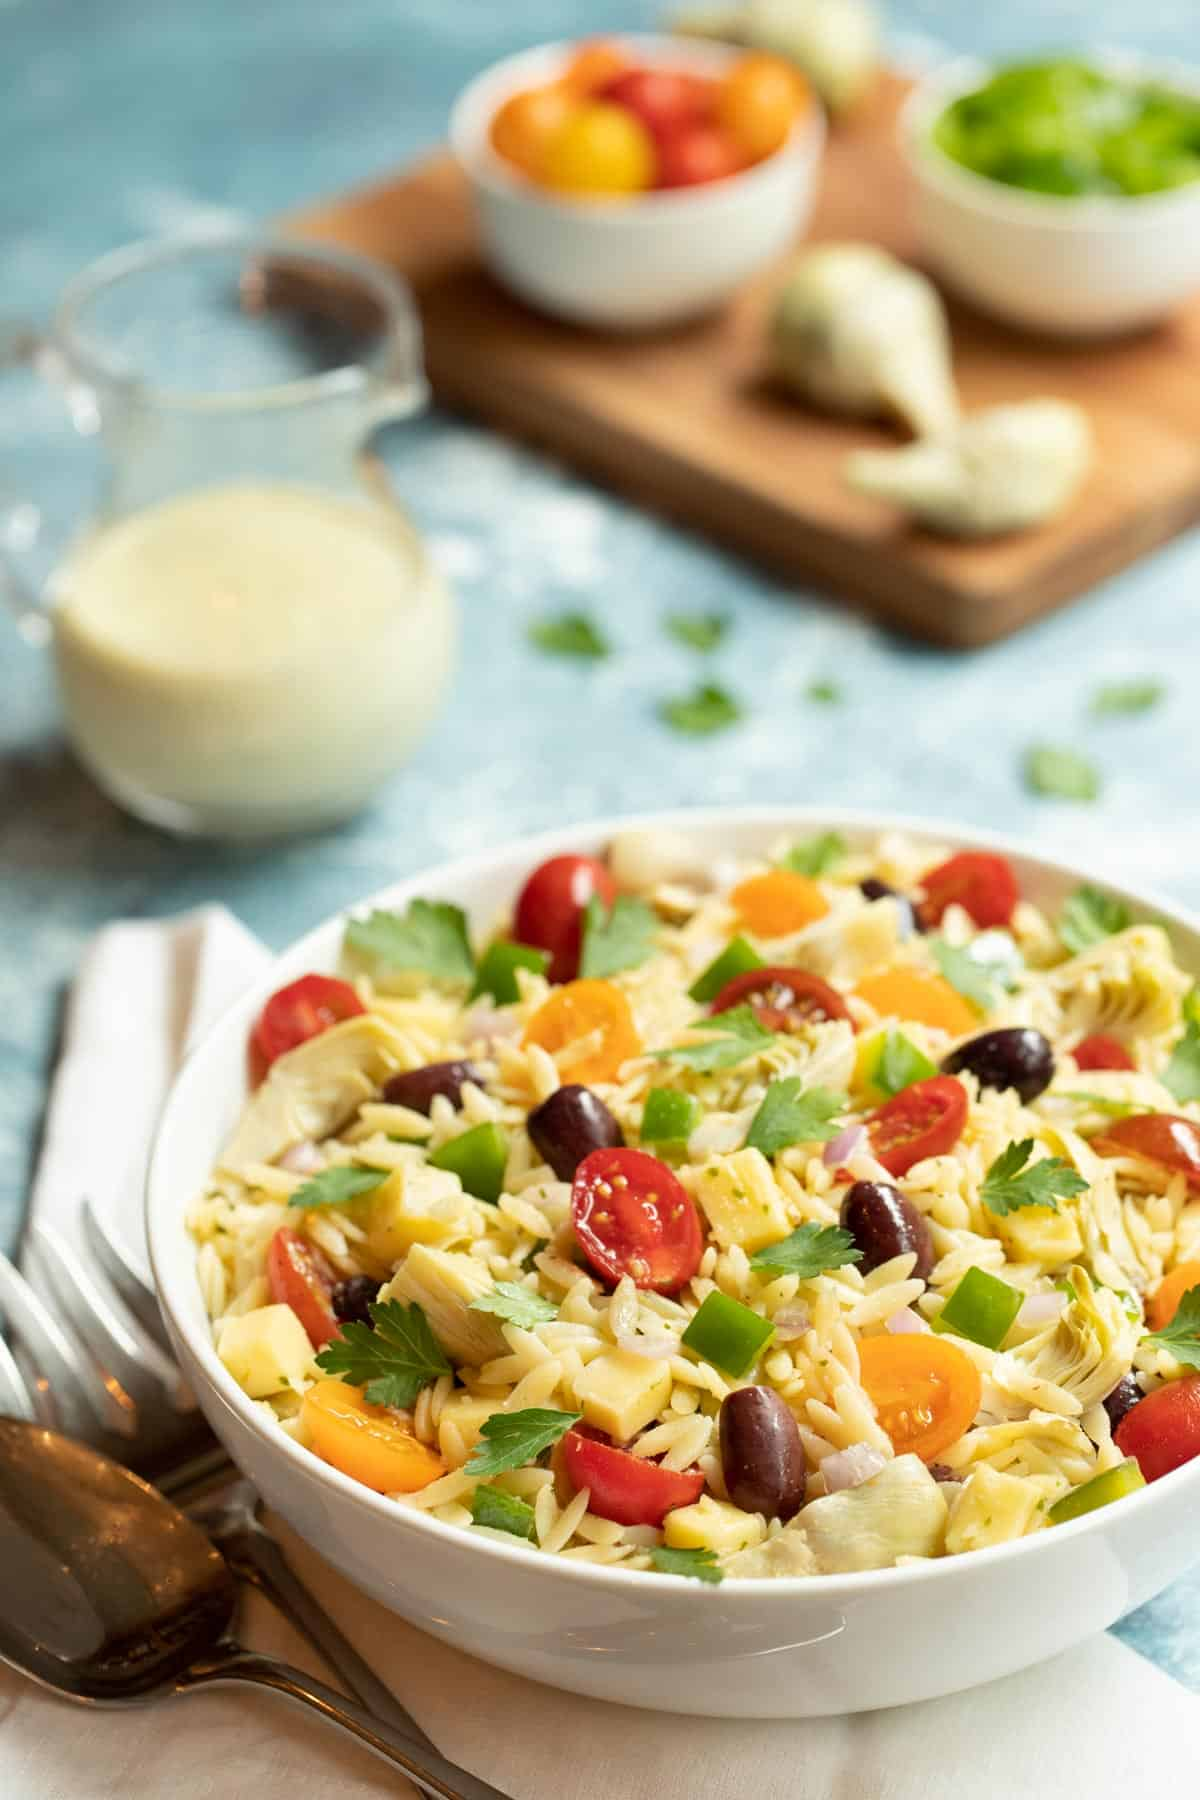 White bowl filled with Greek Orzo Salad with Lemon-Basil Tahini Dressing. Dressing is on the side